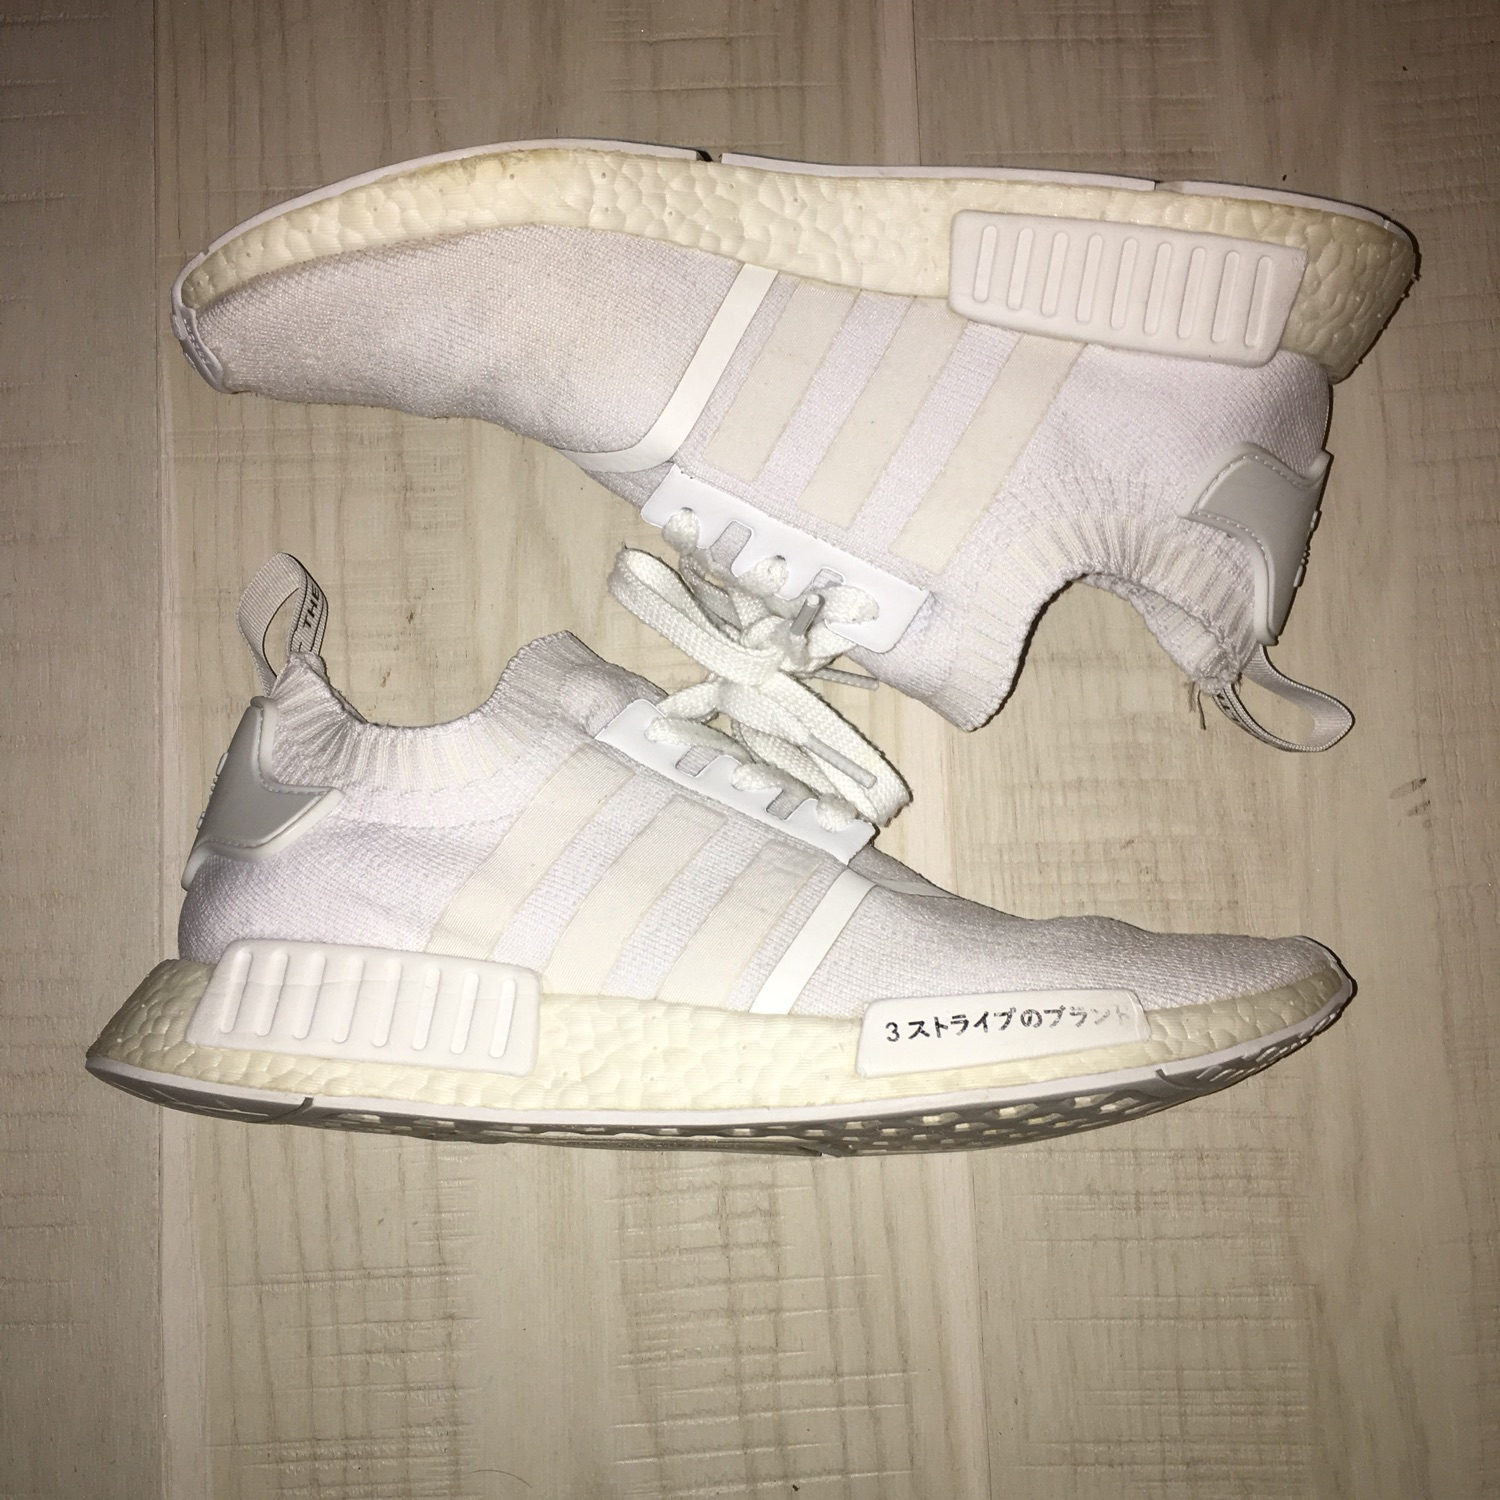 Nmd R1 Japan Boost